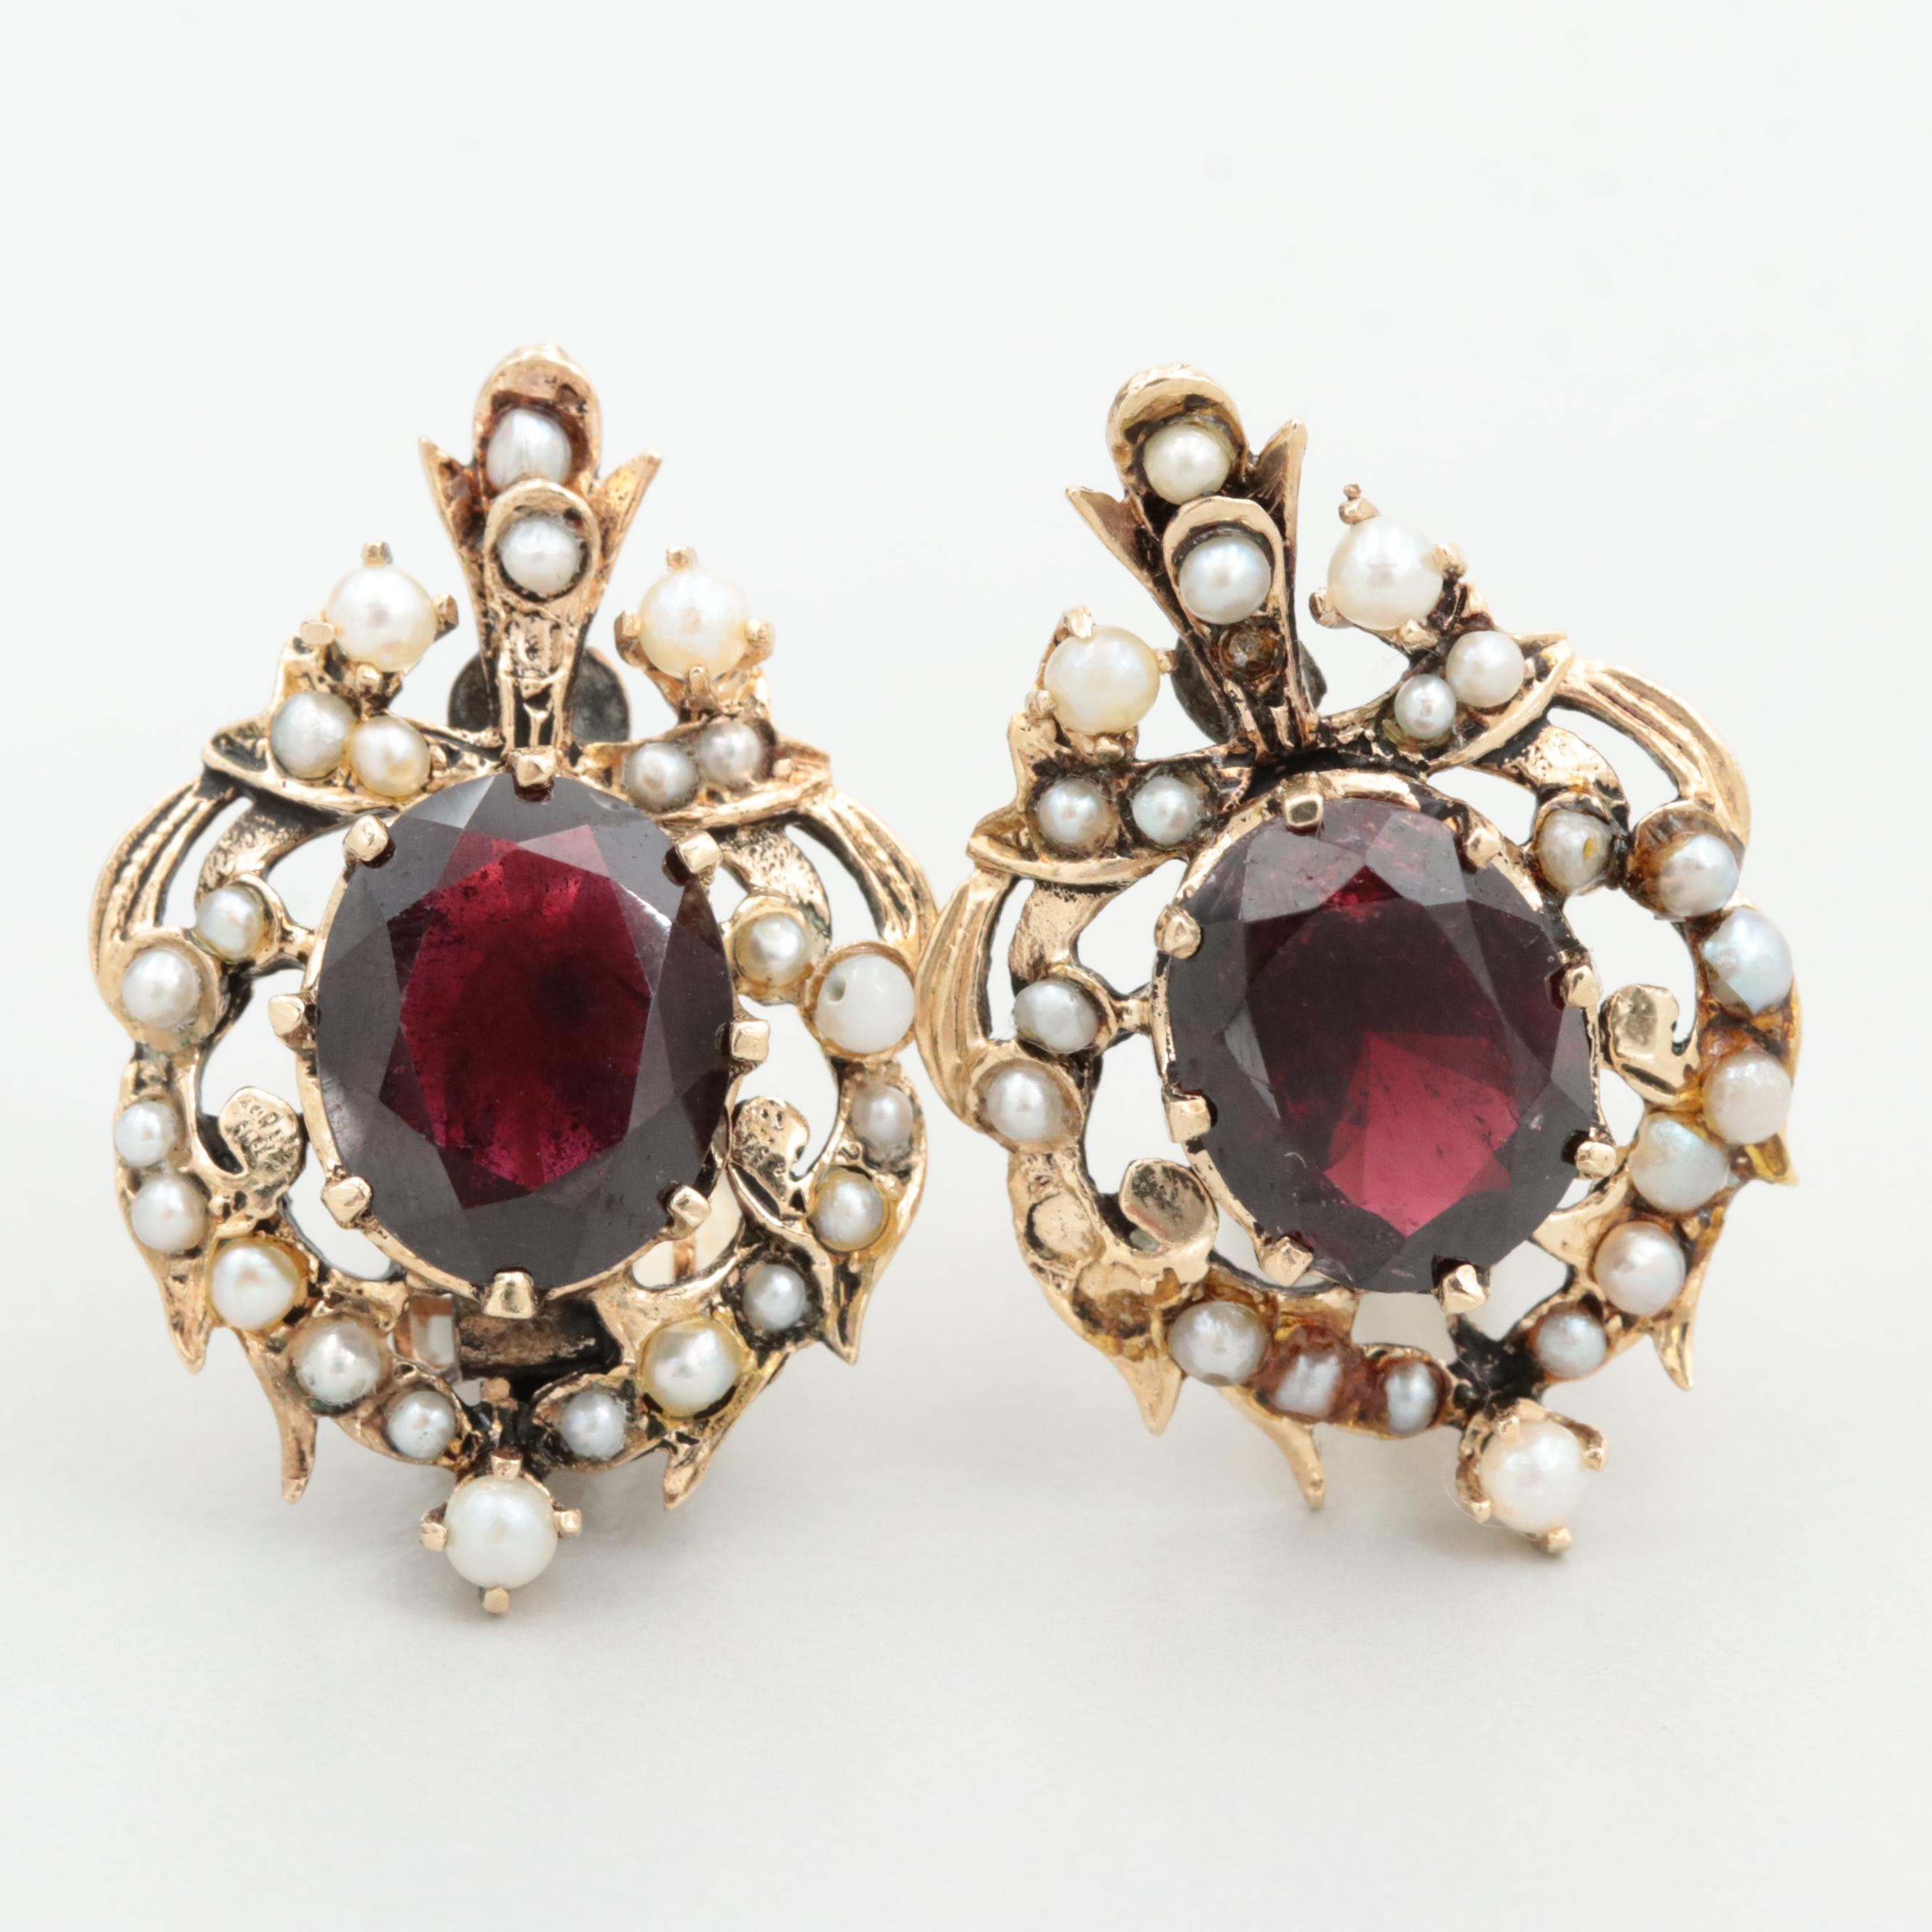 Vintage 14K Yellow Gold Garnet and Cultured Pearl Earrings